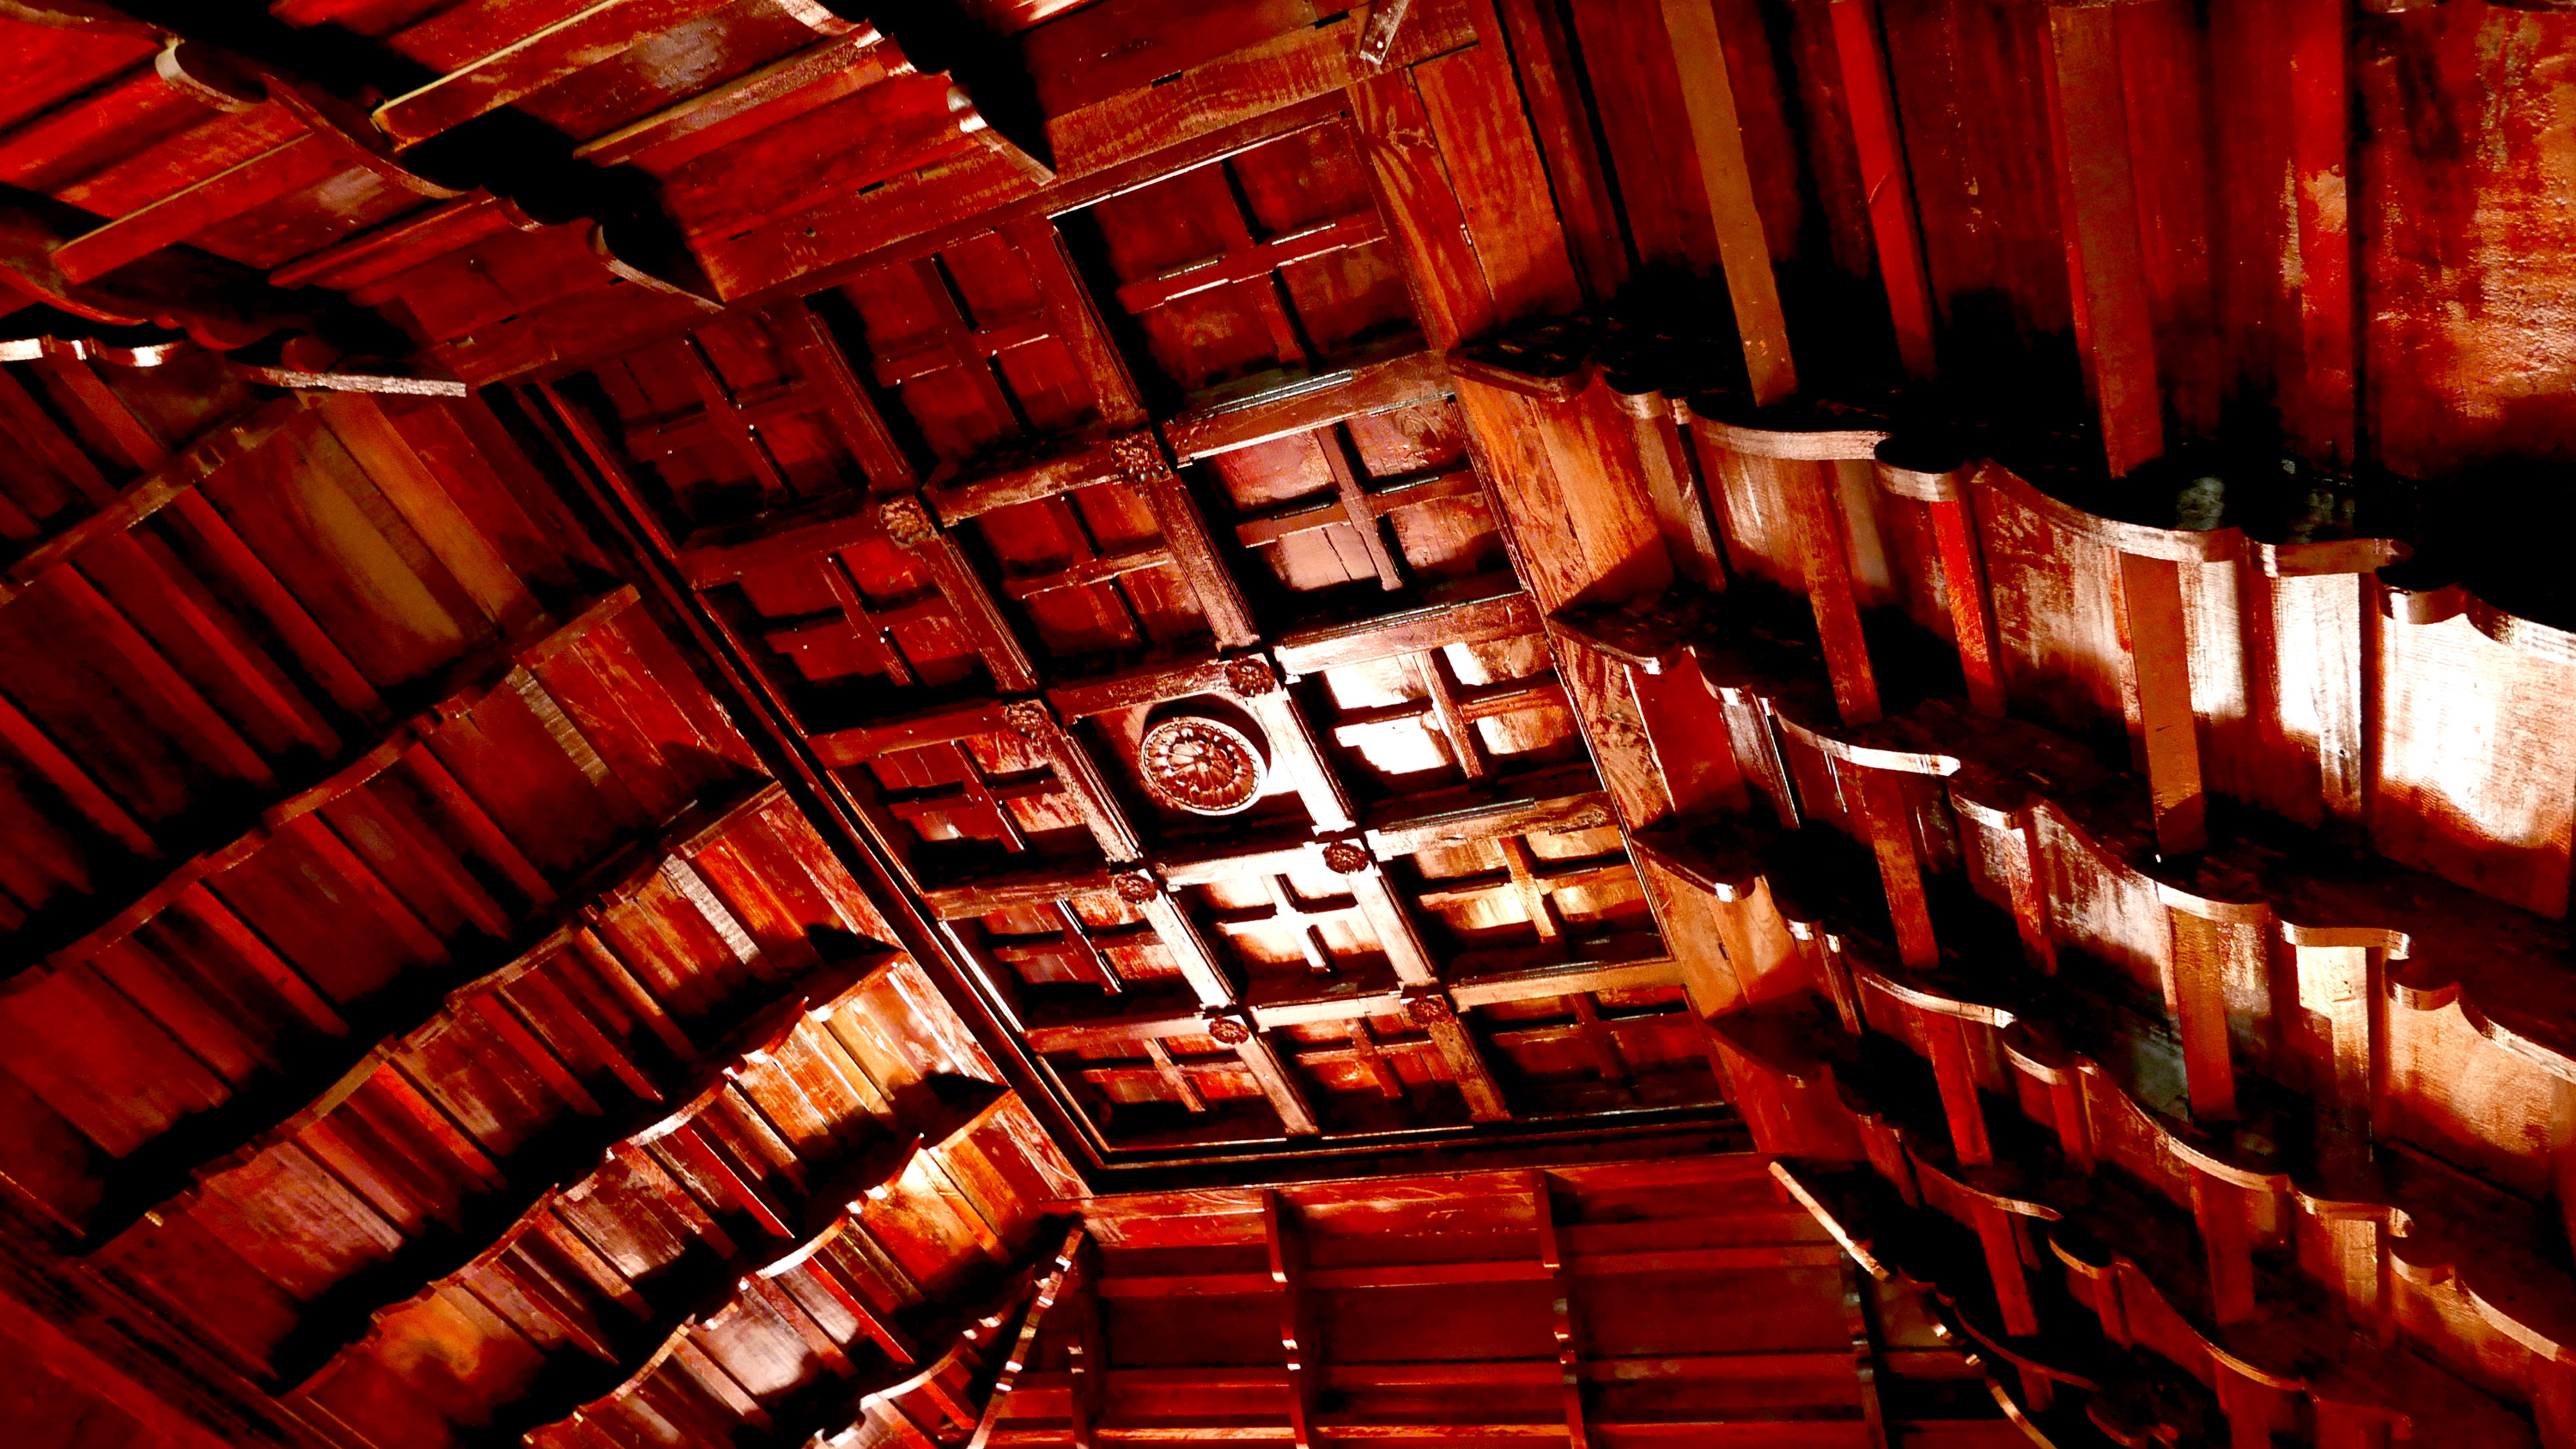 Kerala traditional wooden house Sukhayus Ayurveda